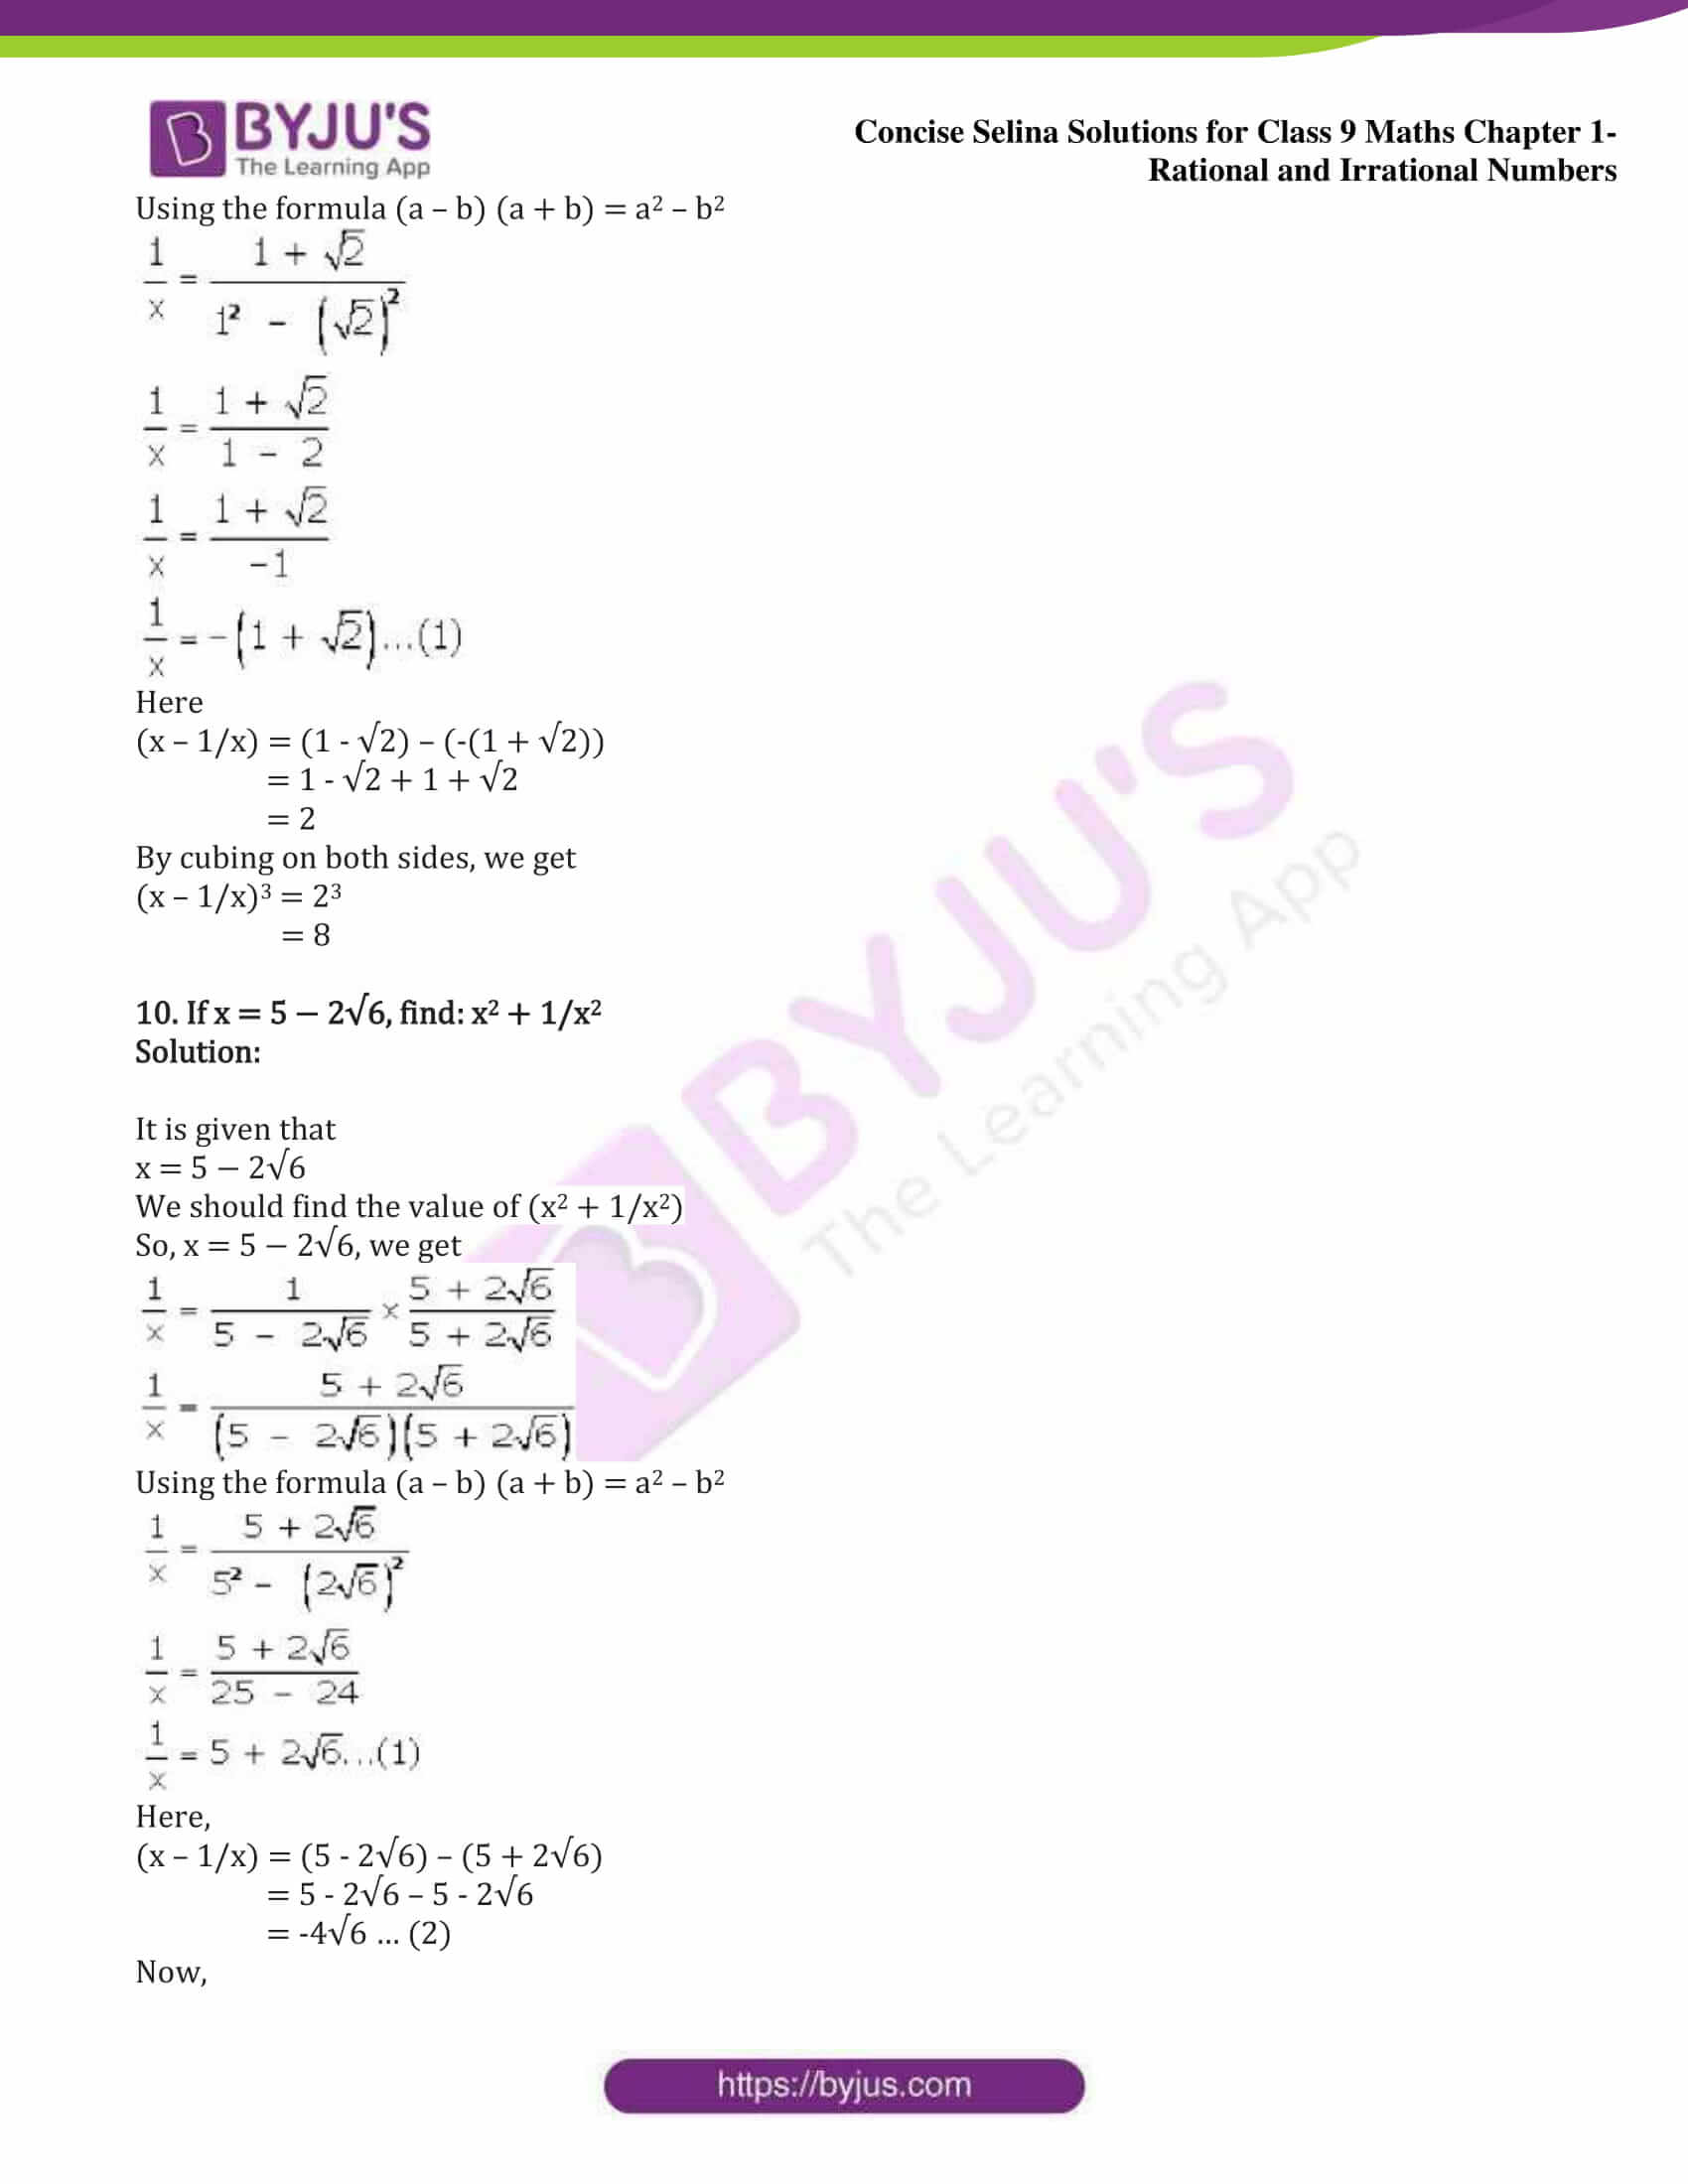 icse class 9 maths may13 selina solutions chapter 1 rational and irrational numbers 27